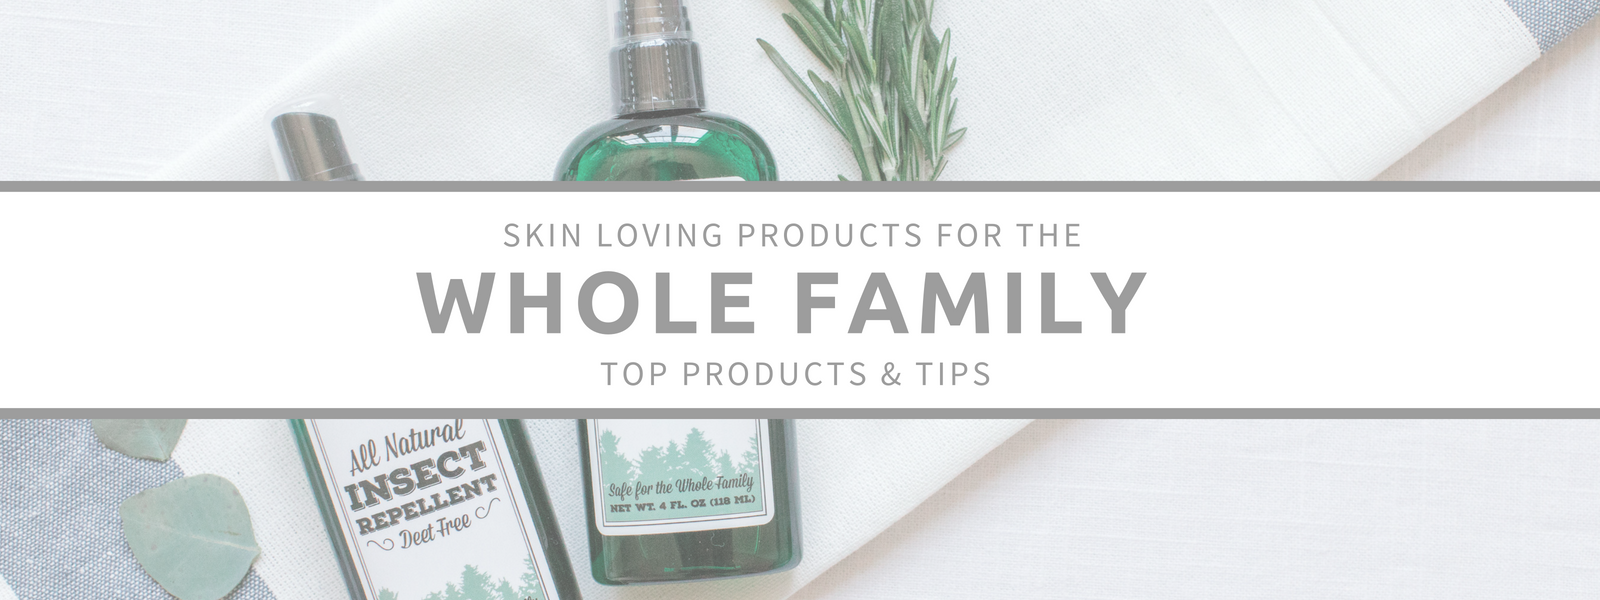 WHOLE FAMILY SKINCARE PRODUCTS